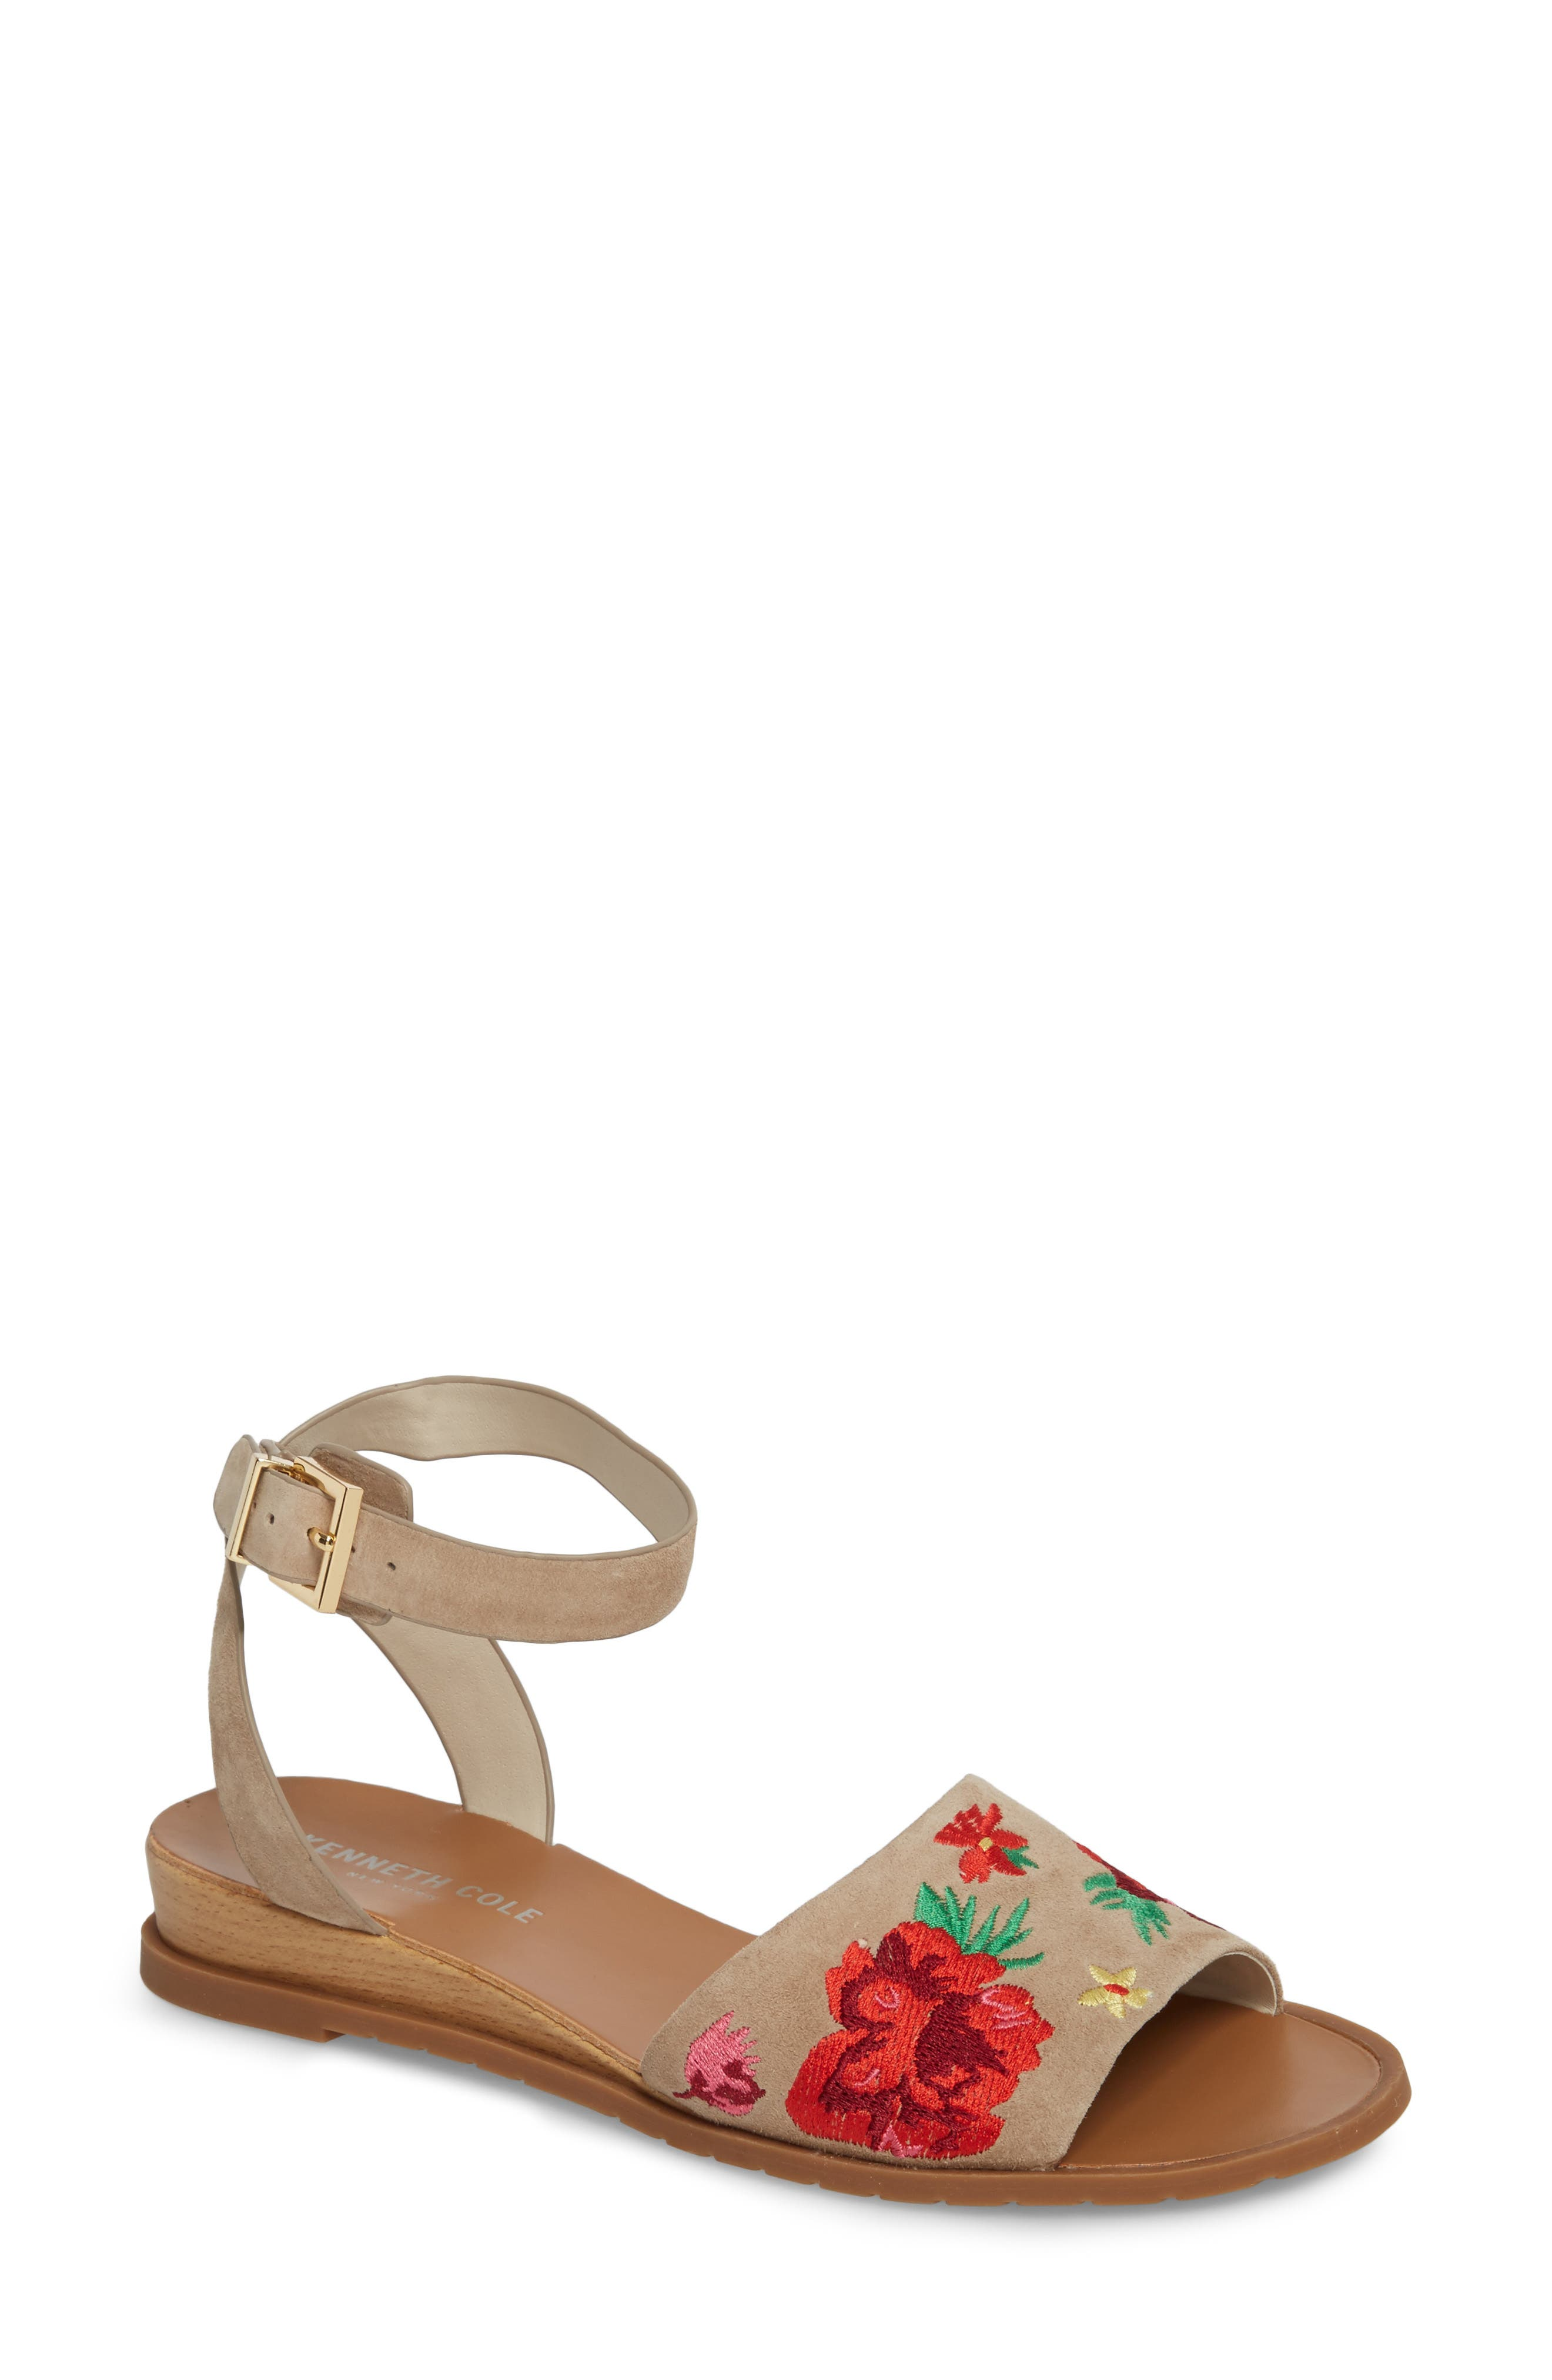 Kenneth Cole New York Jinny Ankle Strap Sandal (Women)